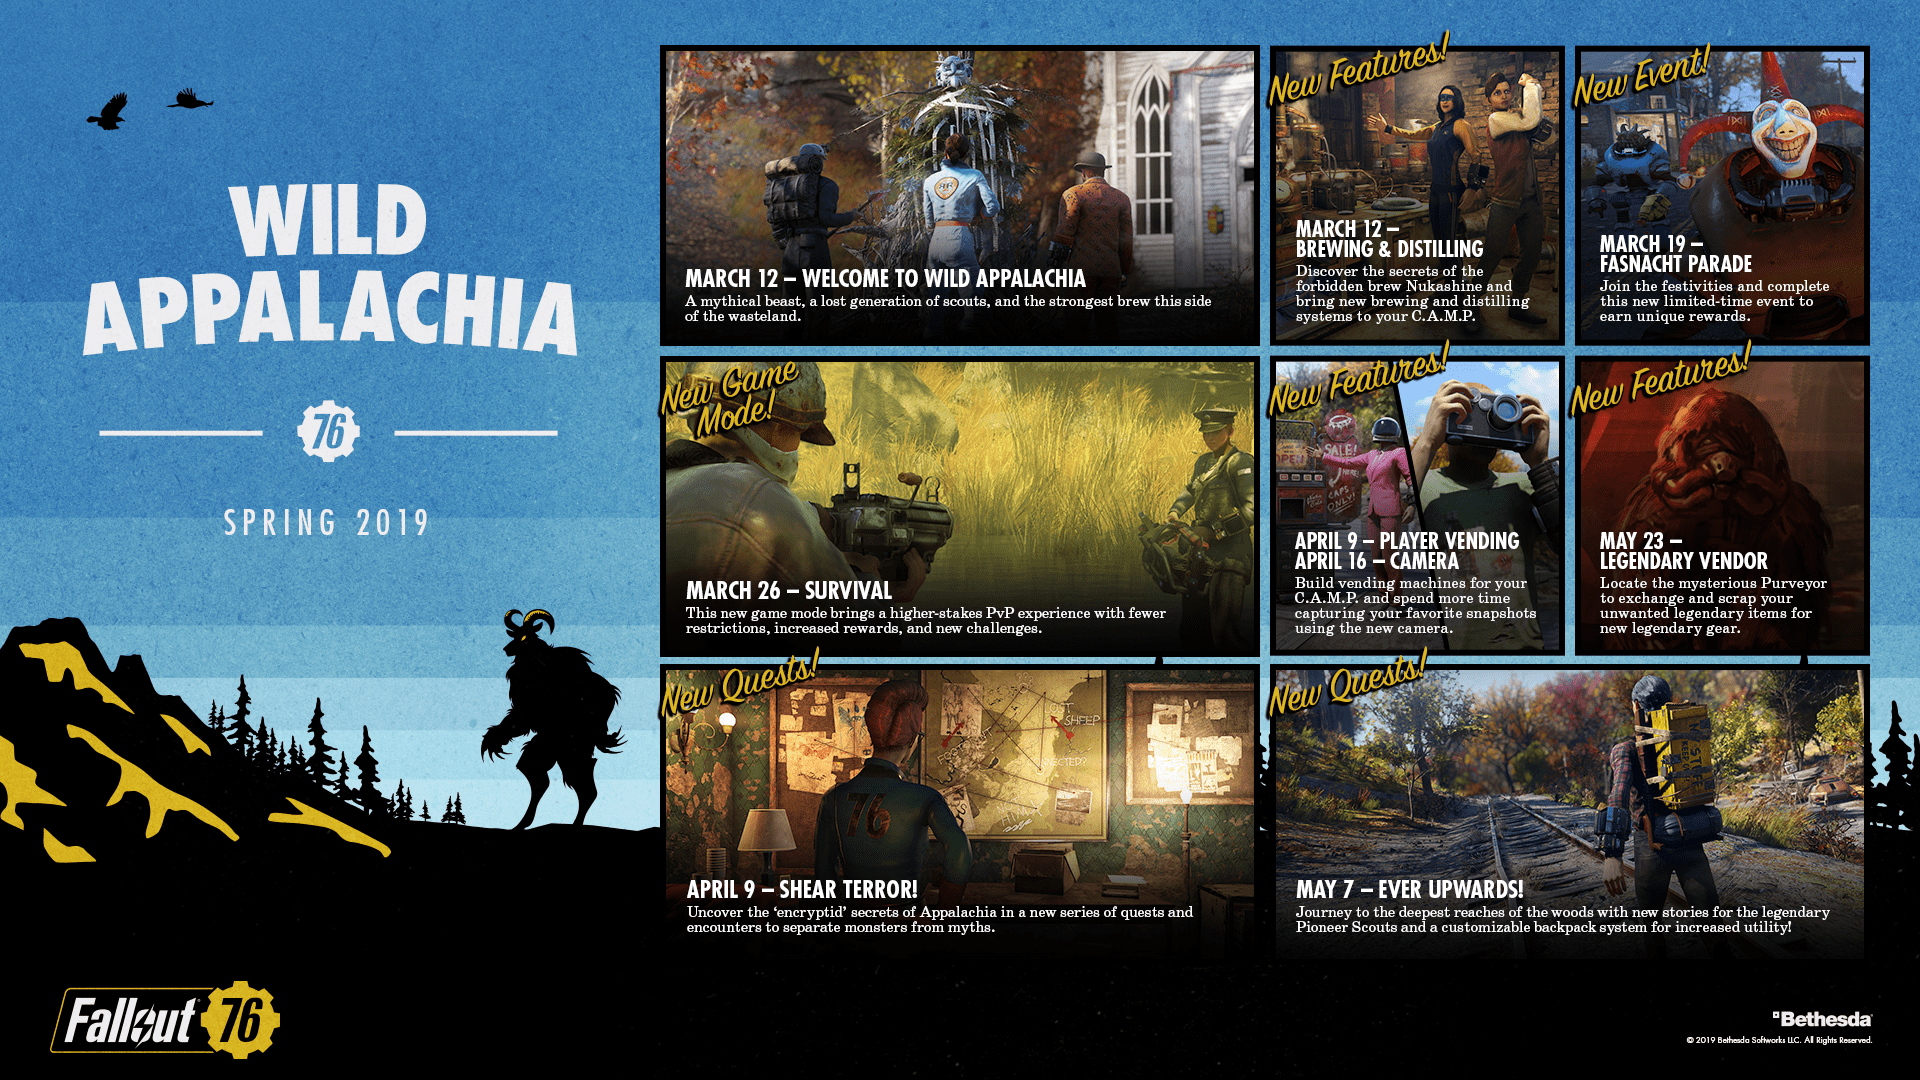 Fallout 76 S Roadmap For The Year Has Been Revealed